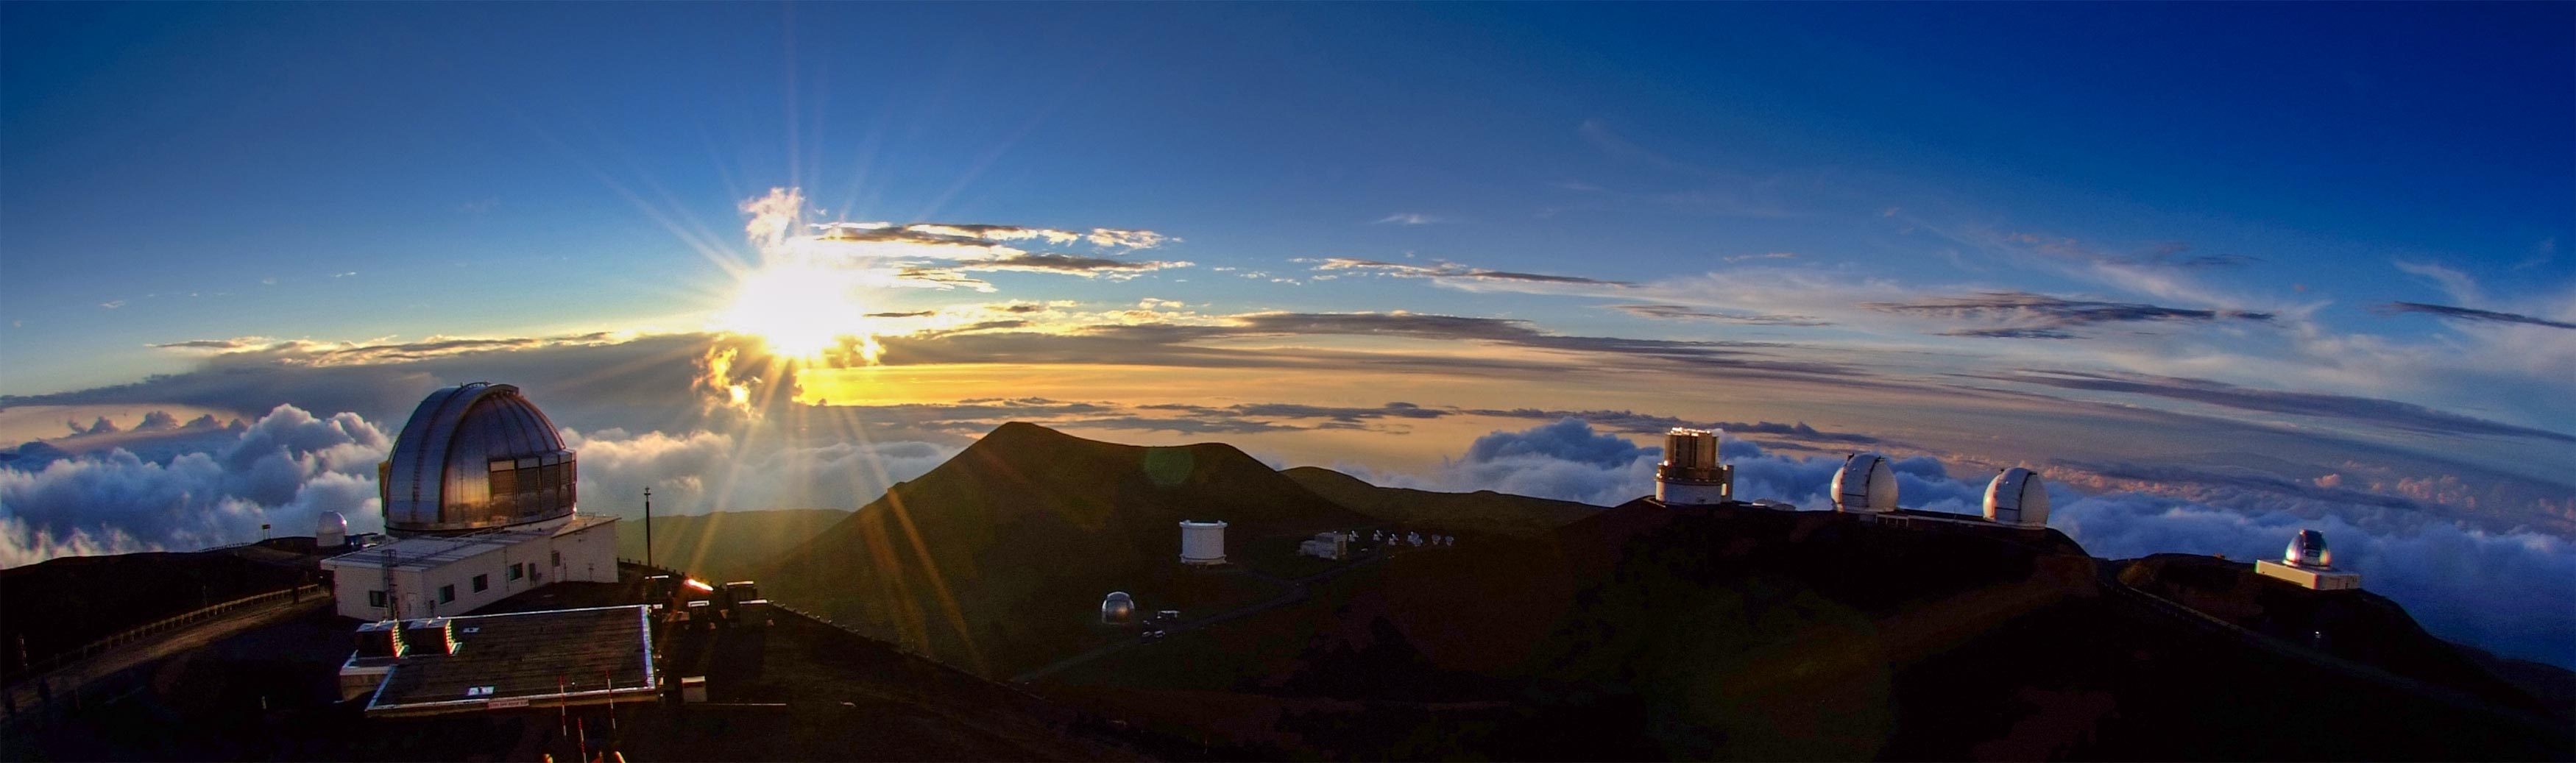 Some of the world's best observatories are located on Mauna Kea